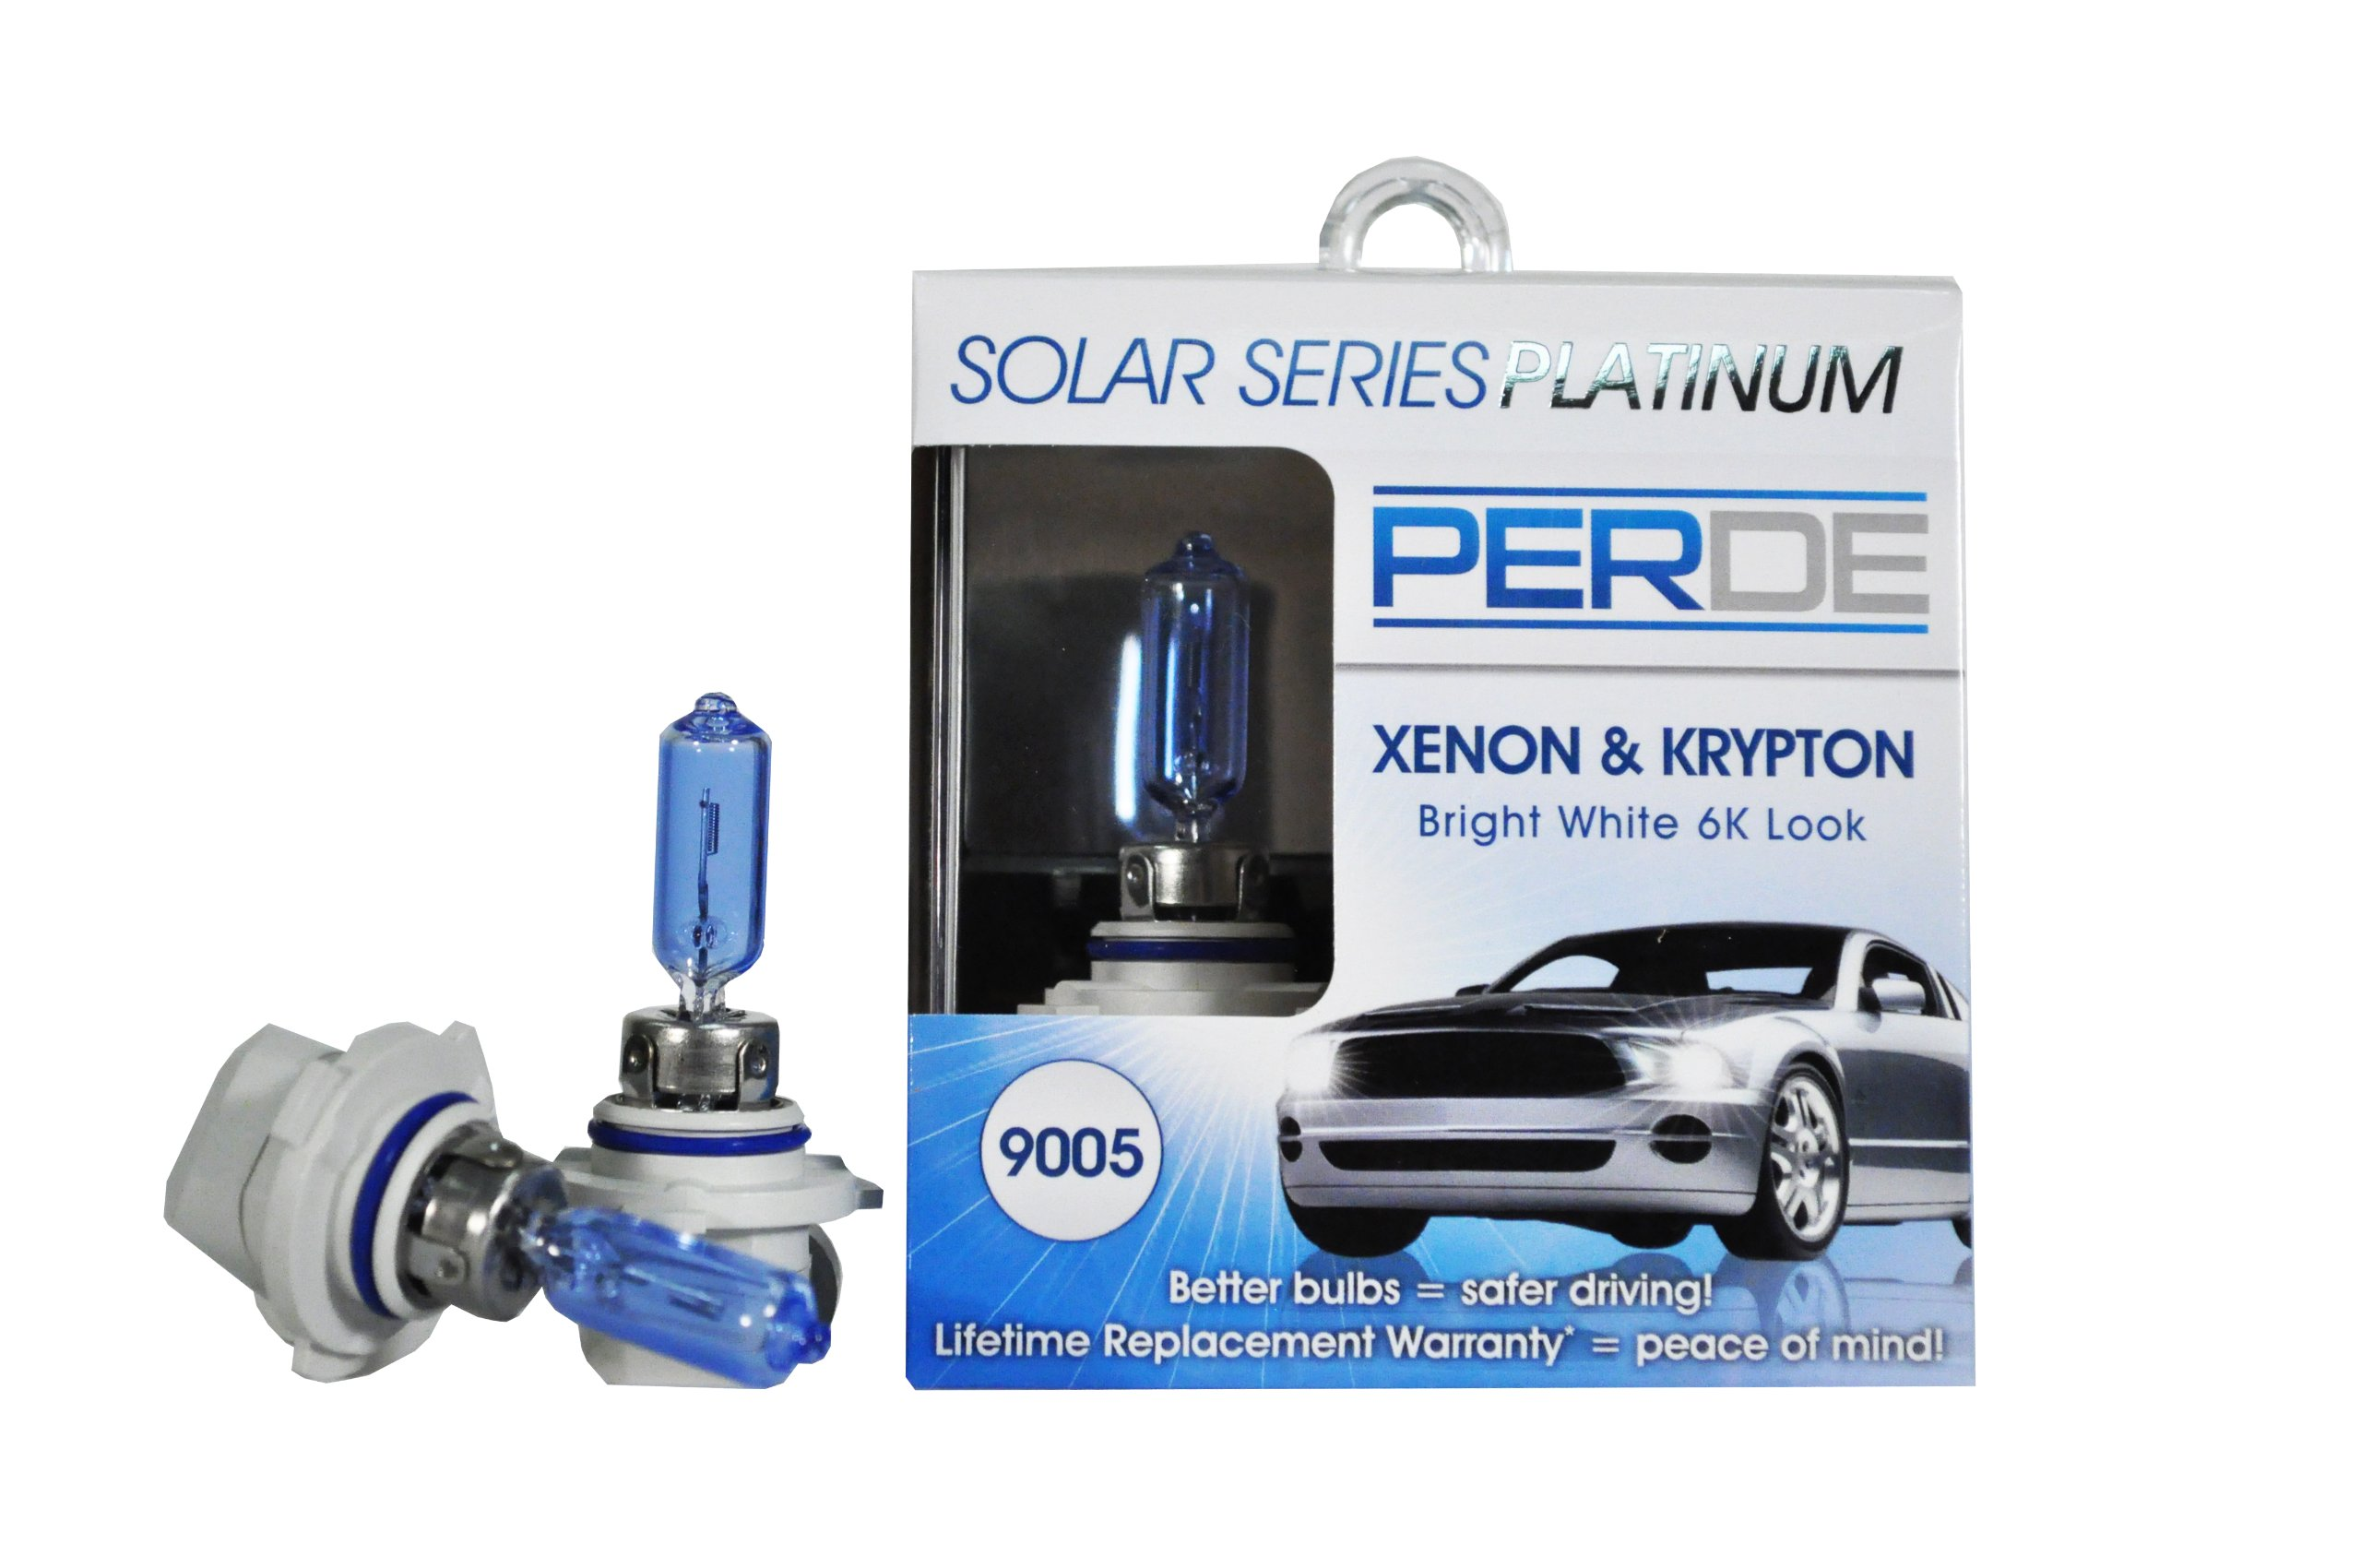 PERDE Solar Series Platinum Xenon Enhanced Halogen Bulbs Set of 2 (9005)